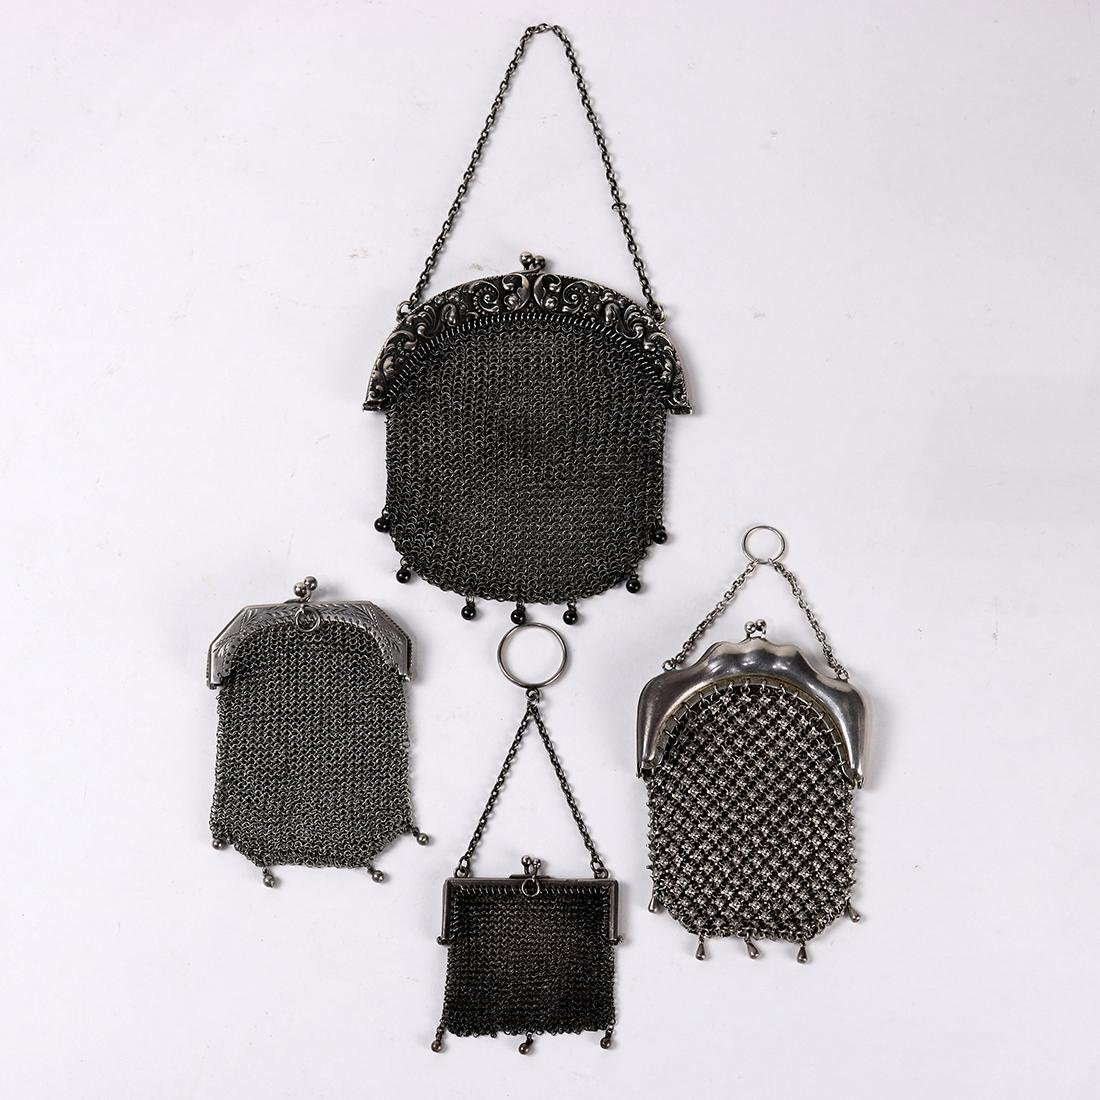 (lot of 4) Vintage silver mesh and chain mail purses,